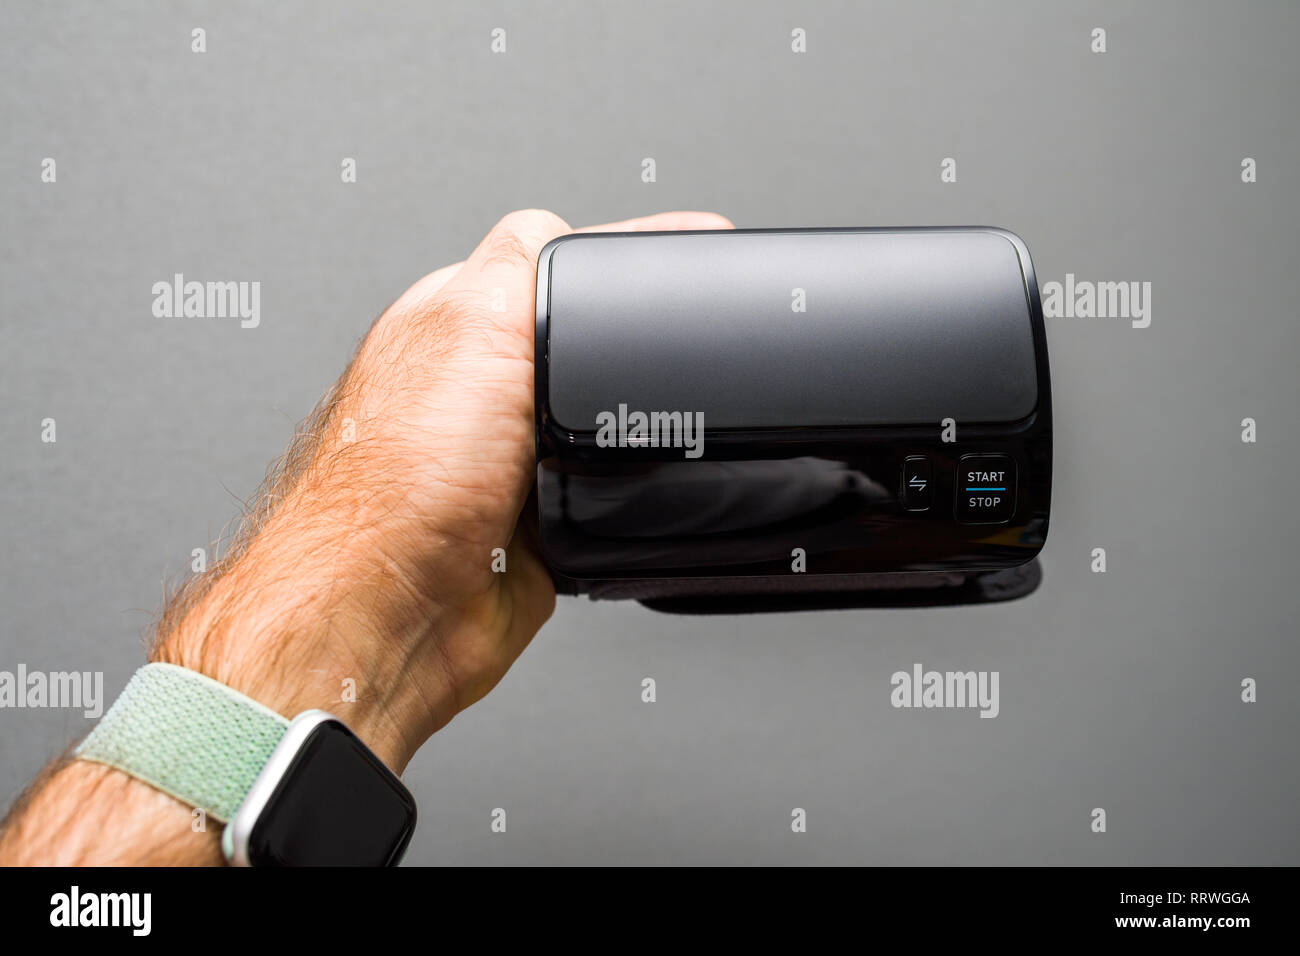 Patient holding against gray background modern electronic internet connected wireless upper arm blood pressure monitor front view  - Stock Image